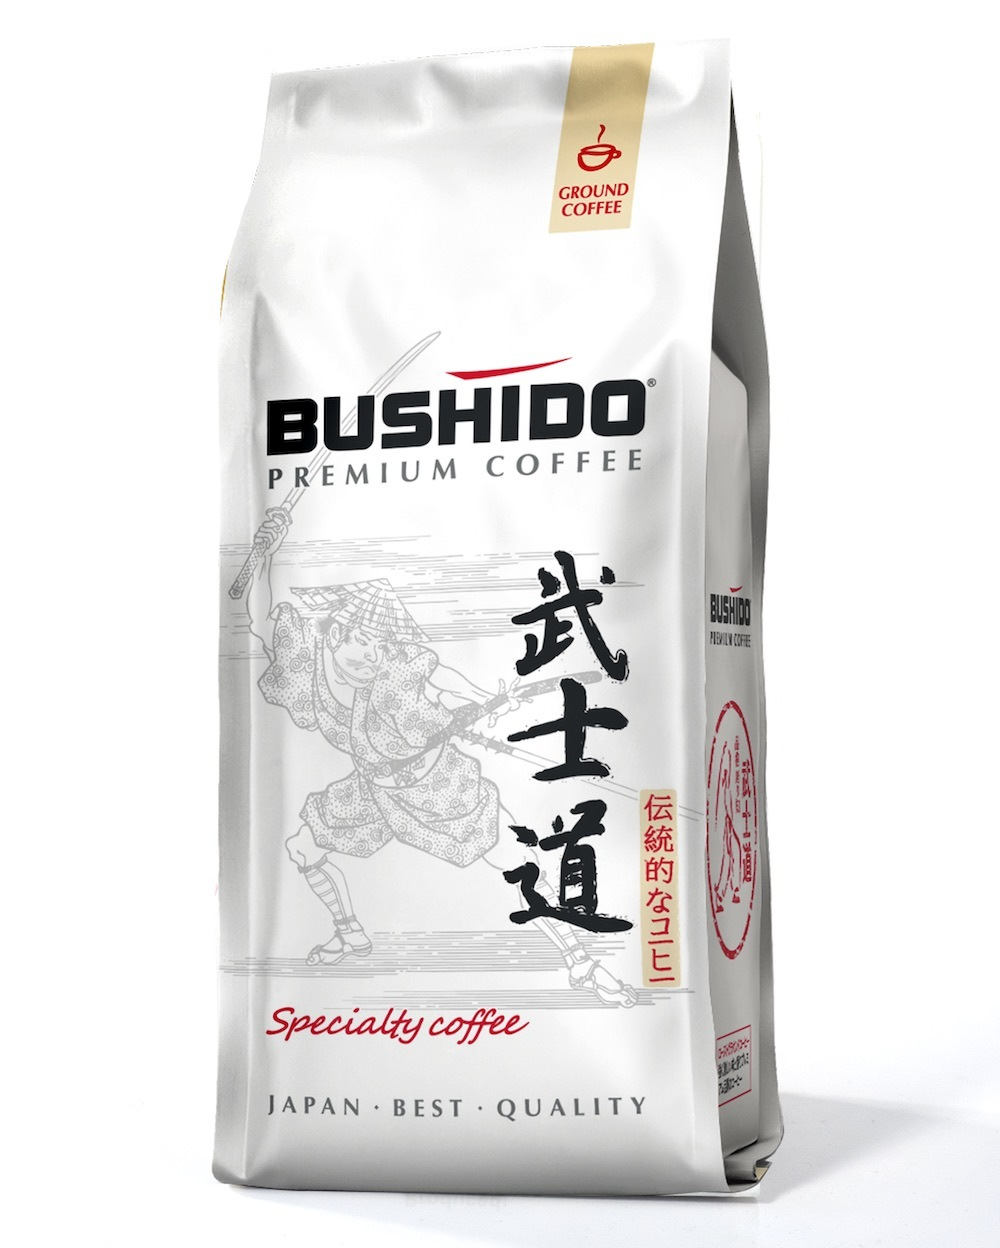 Кофе молотый Кофе молотый Specialty Coffee, Bushido, 227 г import_files_0a_0a6e3d4ecb2511eaa9ce484d7ecee297_2f451858cdab11eaa9ce484d7ecee297.jpg